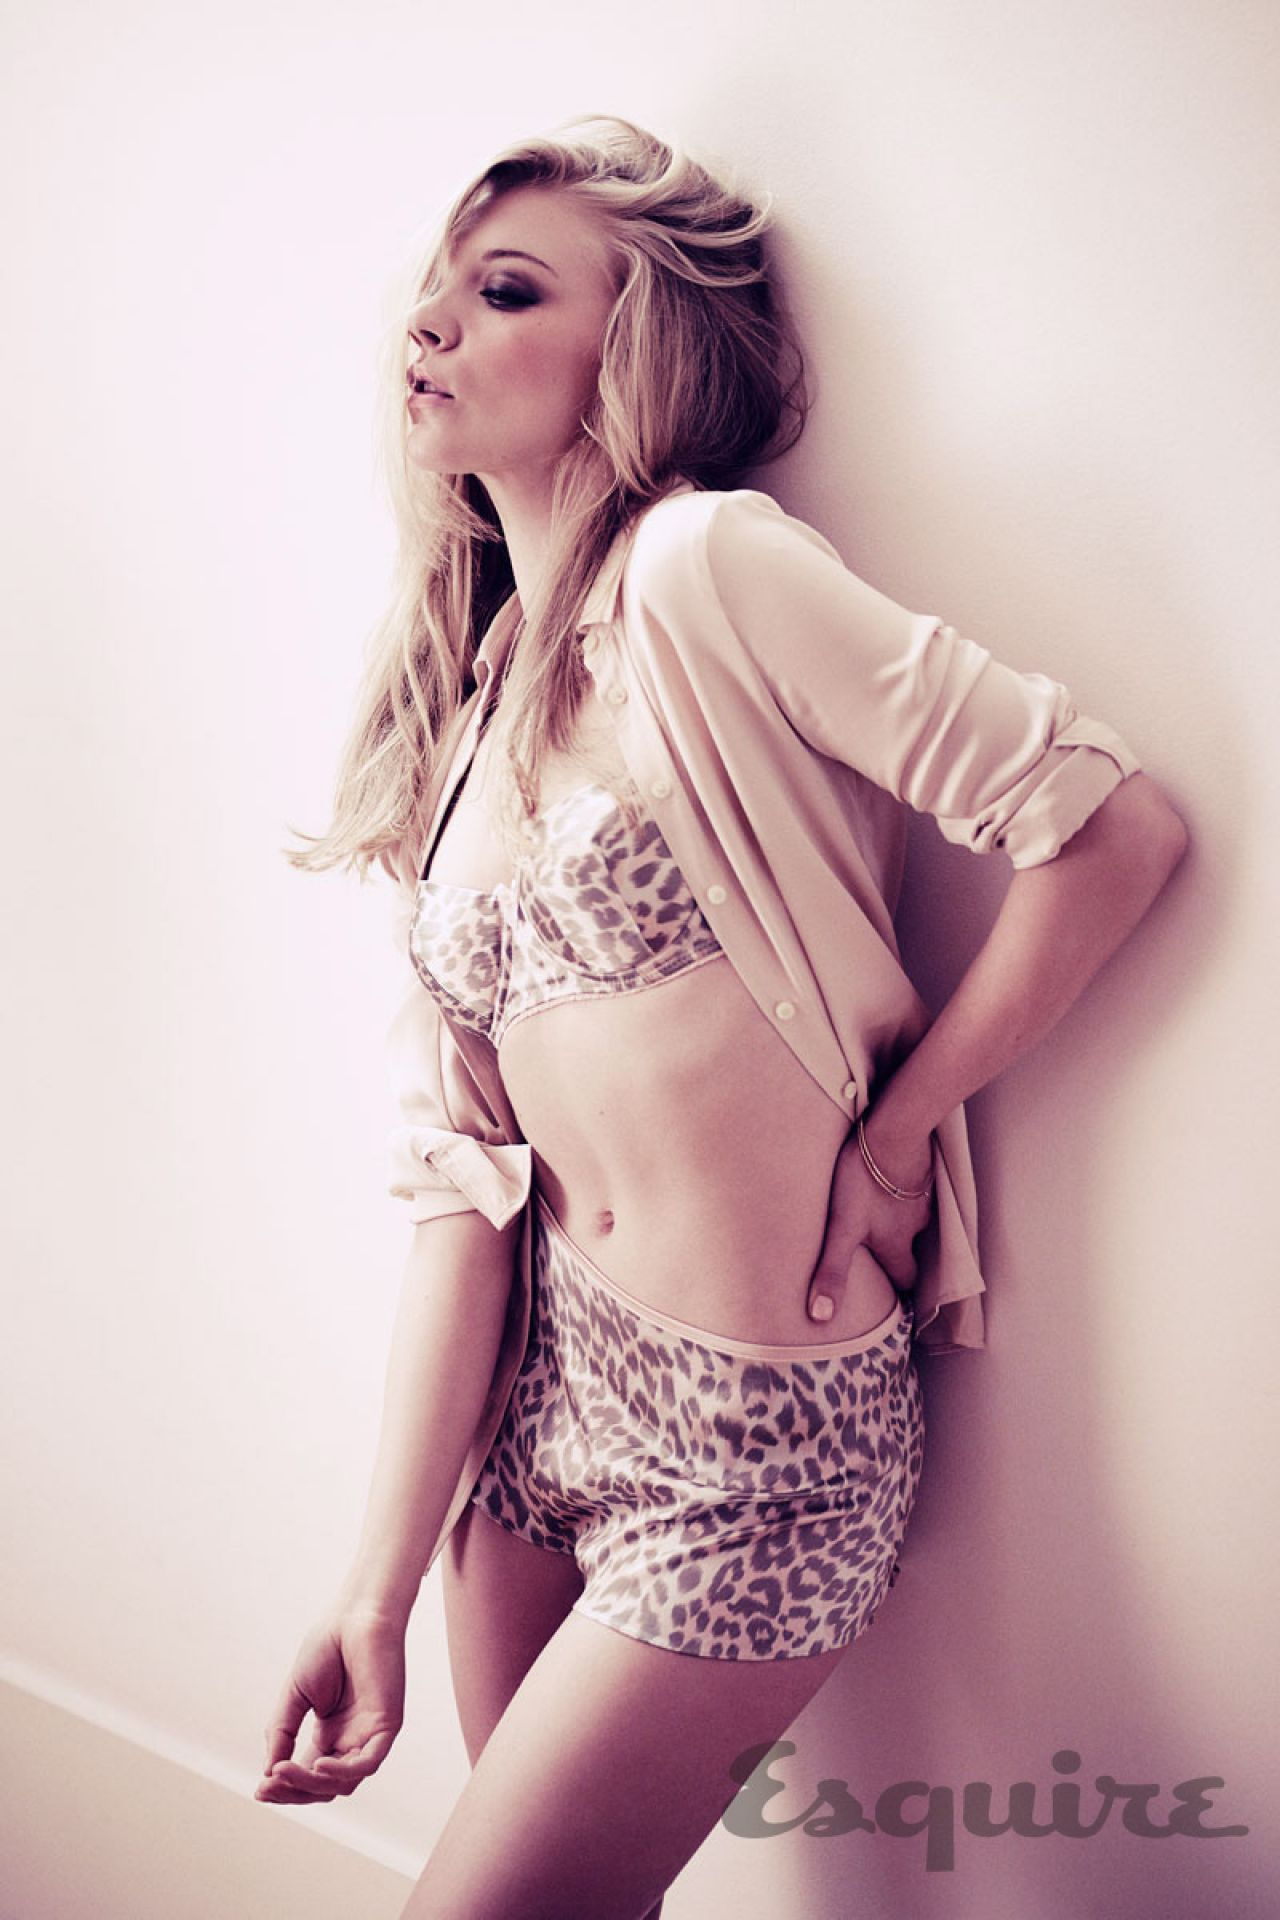 Natalie Dormer - Esquire Magazine, November 2013